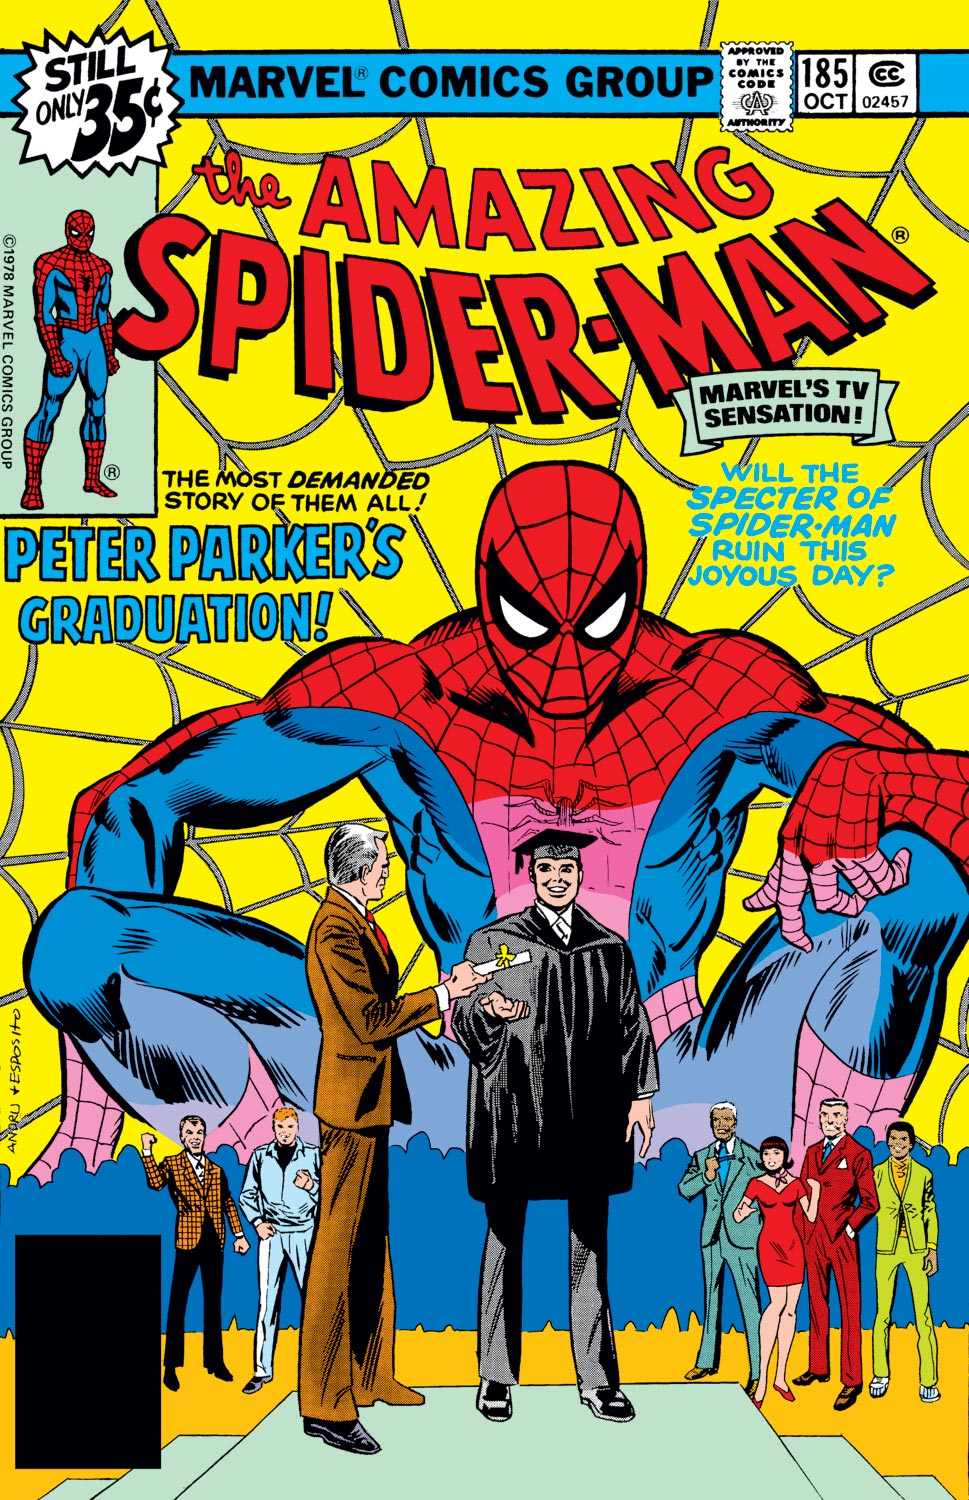 The Amazing Spider-Man (1963) #185